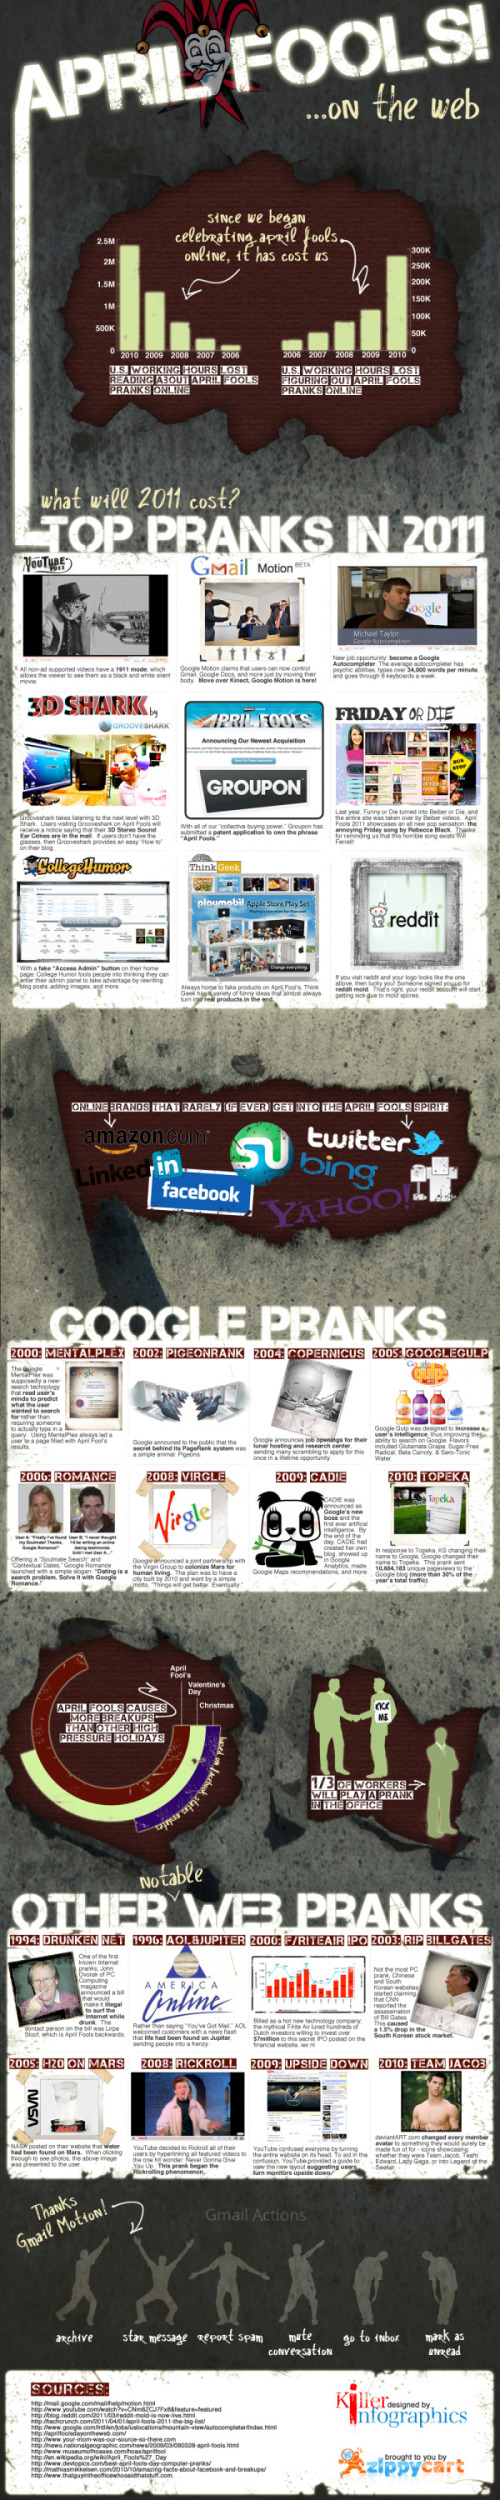 April Fools 2011 On The Web infographic